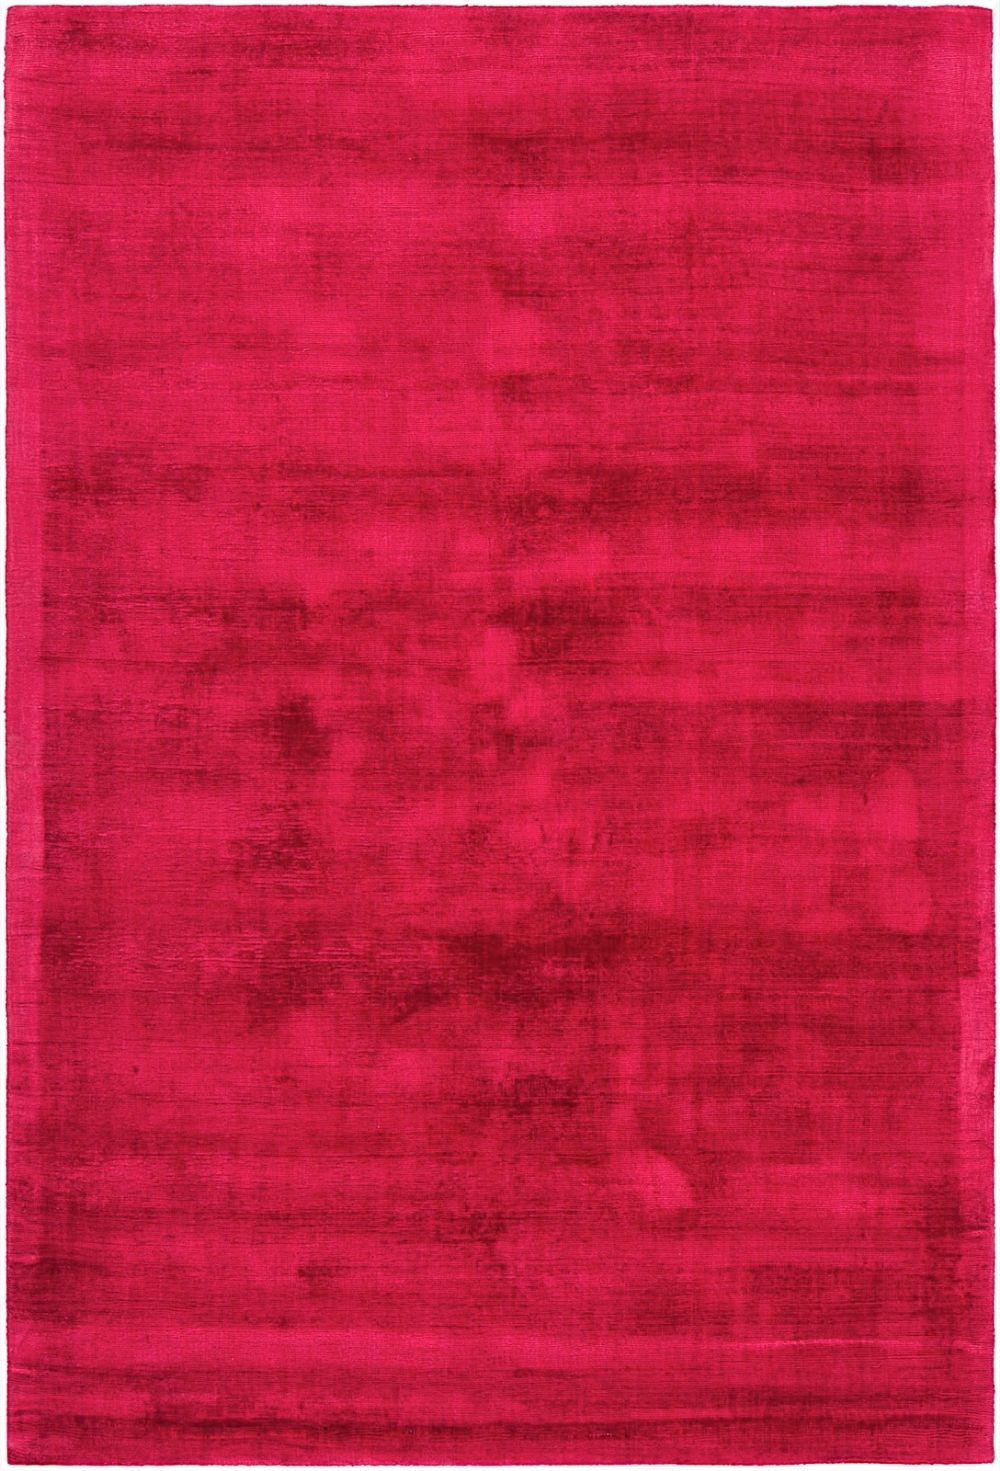 chandra gelco contemporary area rug collection